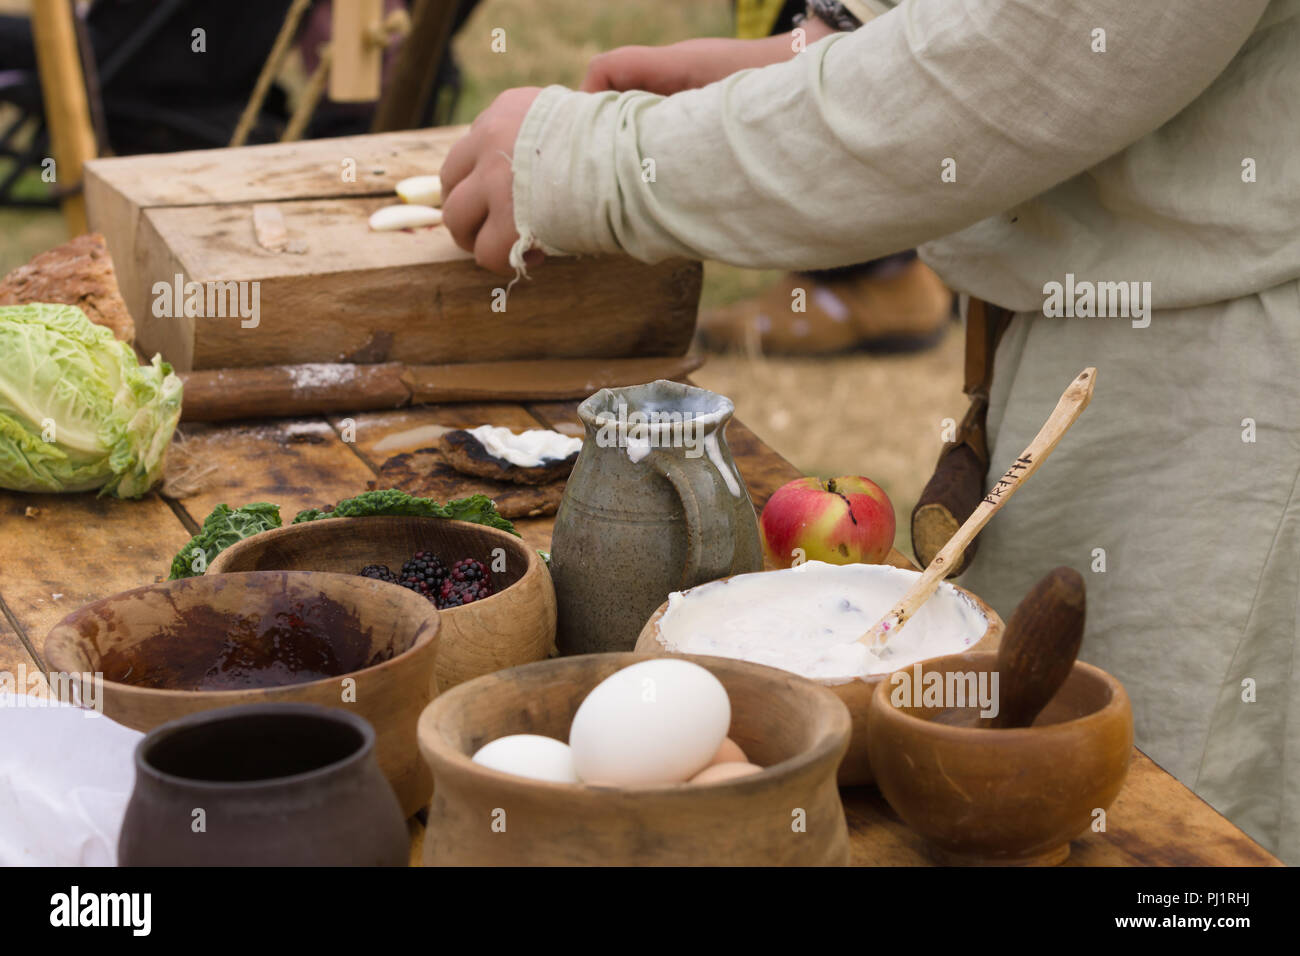 Medieval food preparation including bread, butter, cheese, fruit in wooden bowls or trenchers Stock Photo